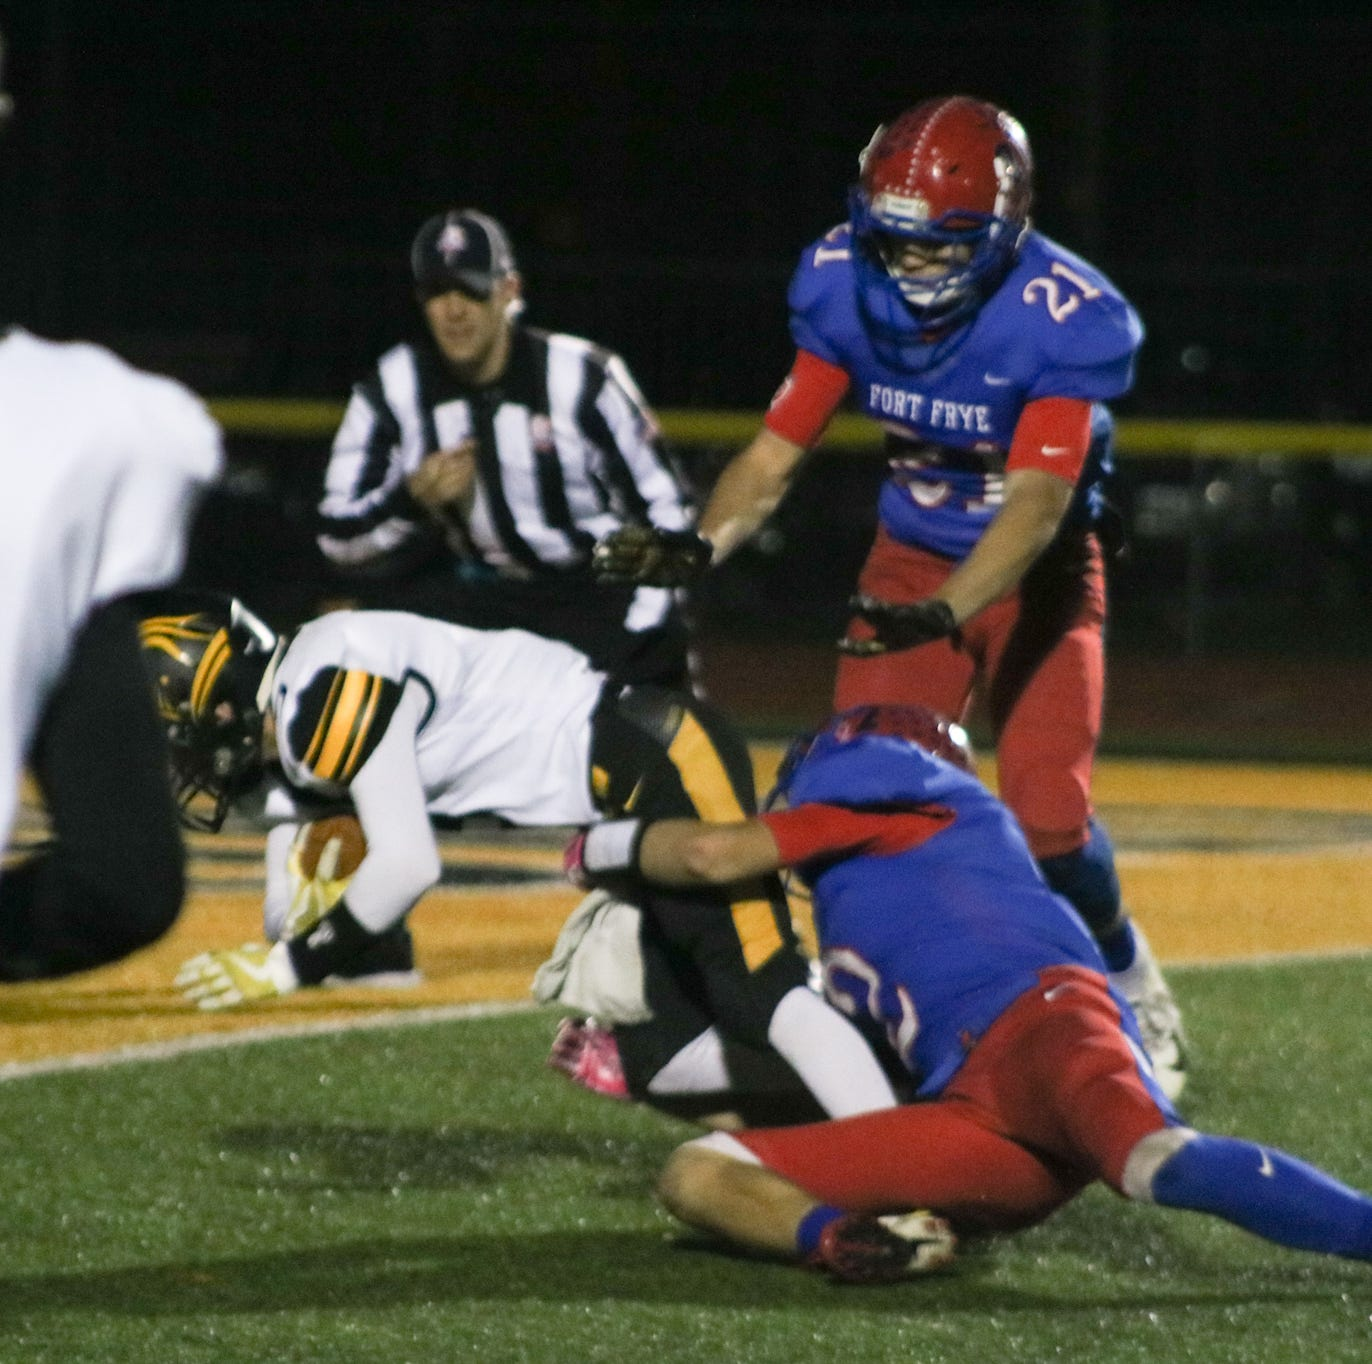 Fort Frye punt fake changes momentum, drops Northmor from playoffs